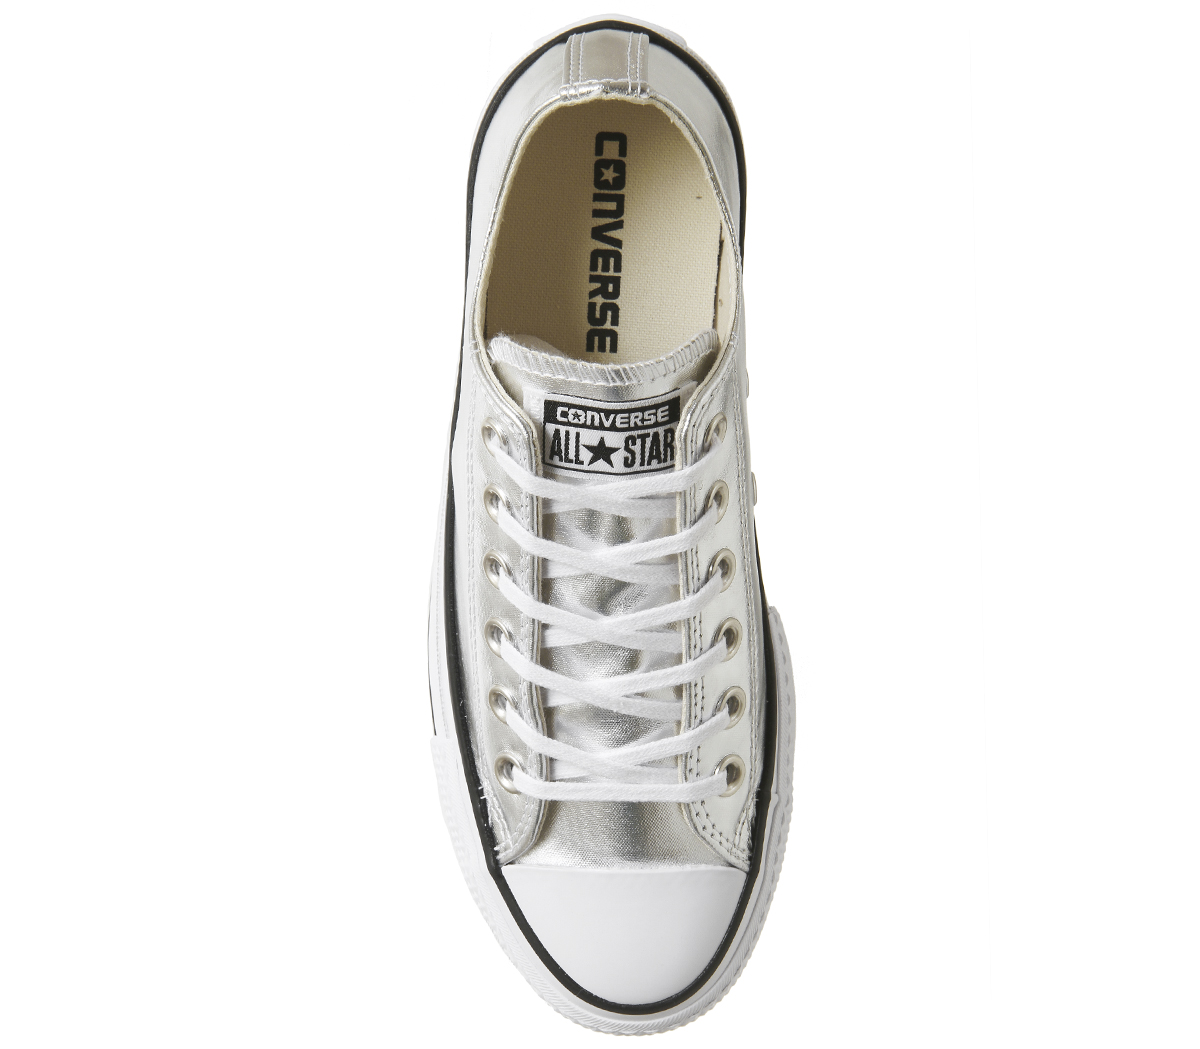 e6f217be553b Womens Converse All Star Low Platforms Silver Black White Trainers ...